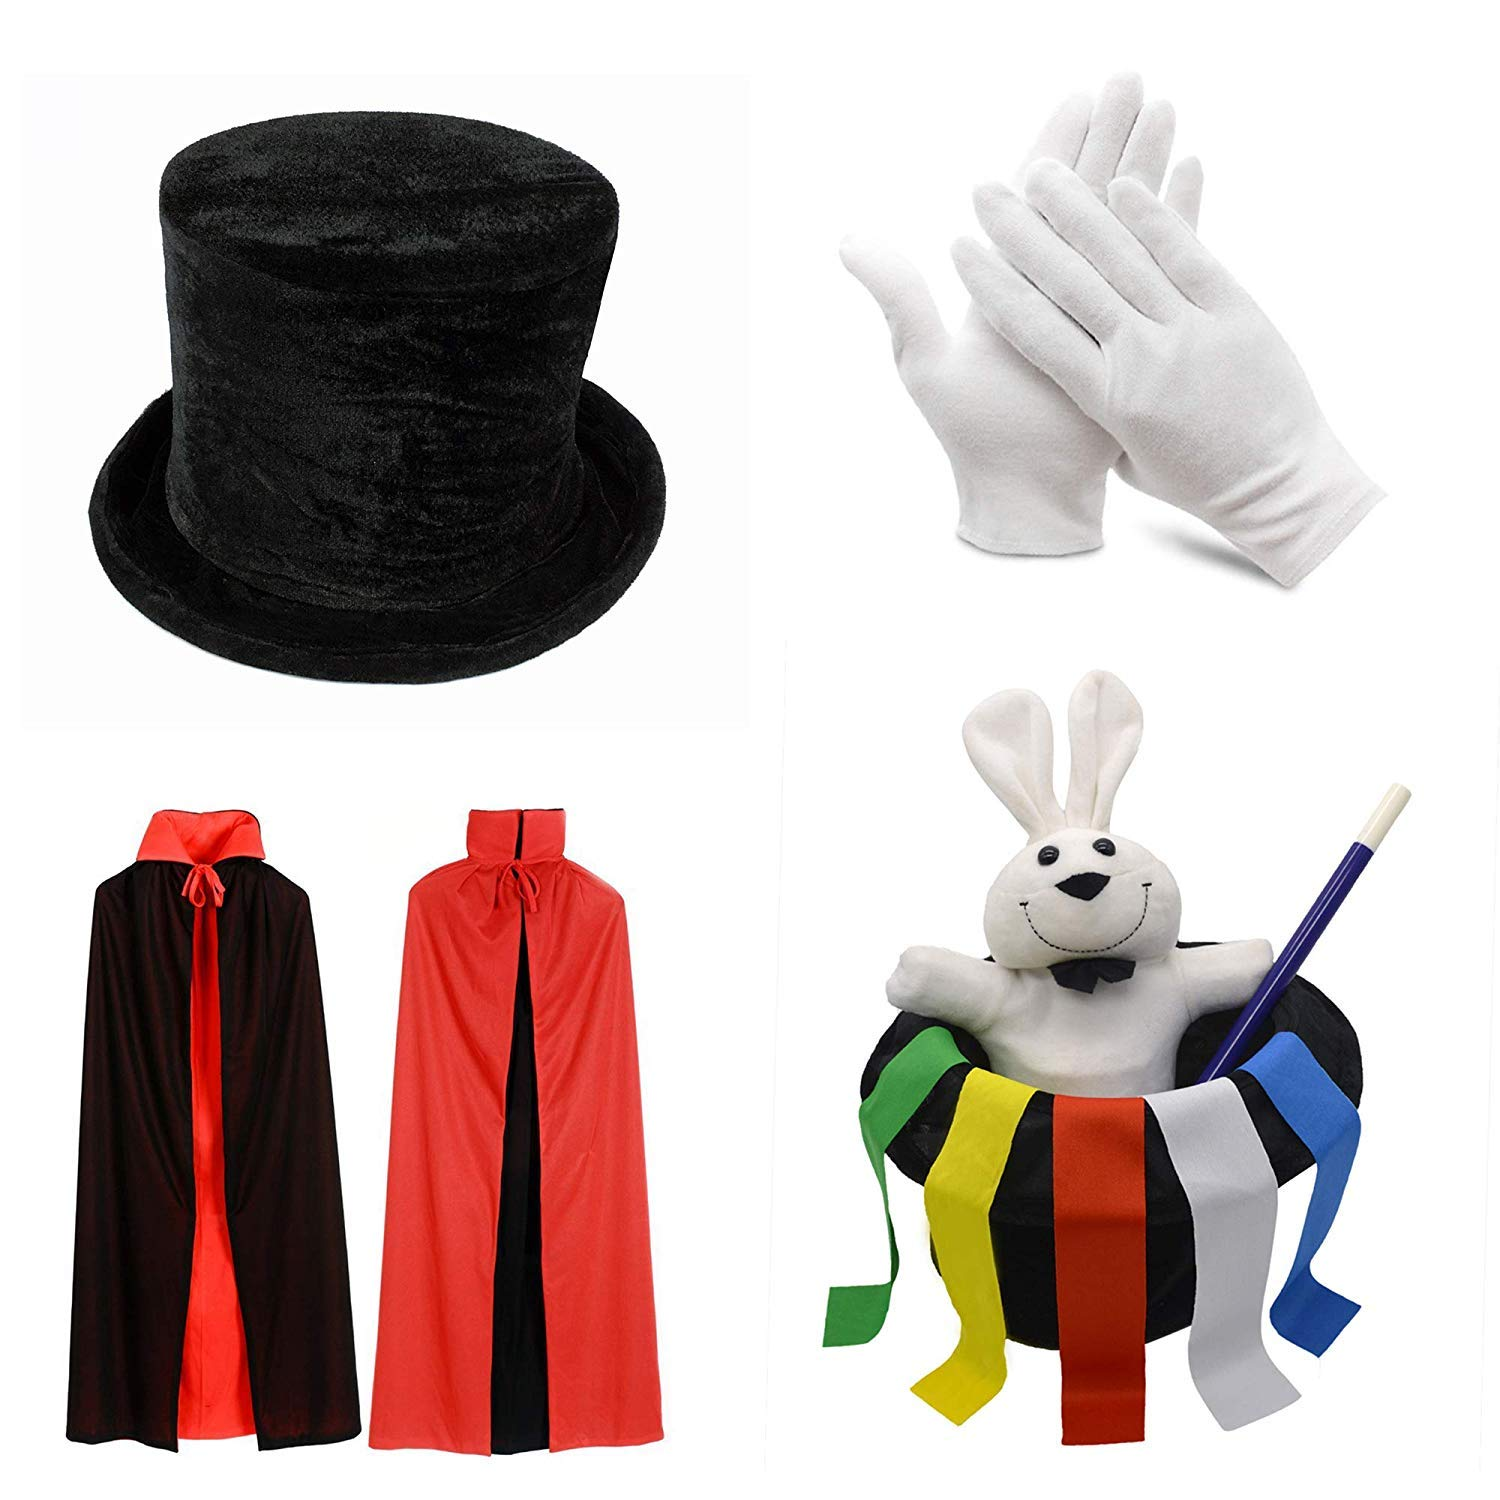 PINKYSTAR Kids Magician Role Play Set with Magic Cape Top Hat Rabbit Magic Wand Gloves and Coloring Ribbons by PINKYSTAR (Image #1)